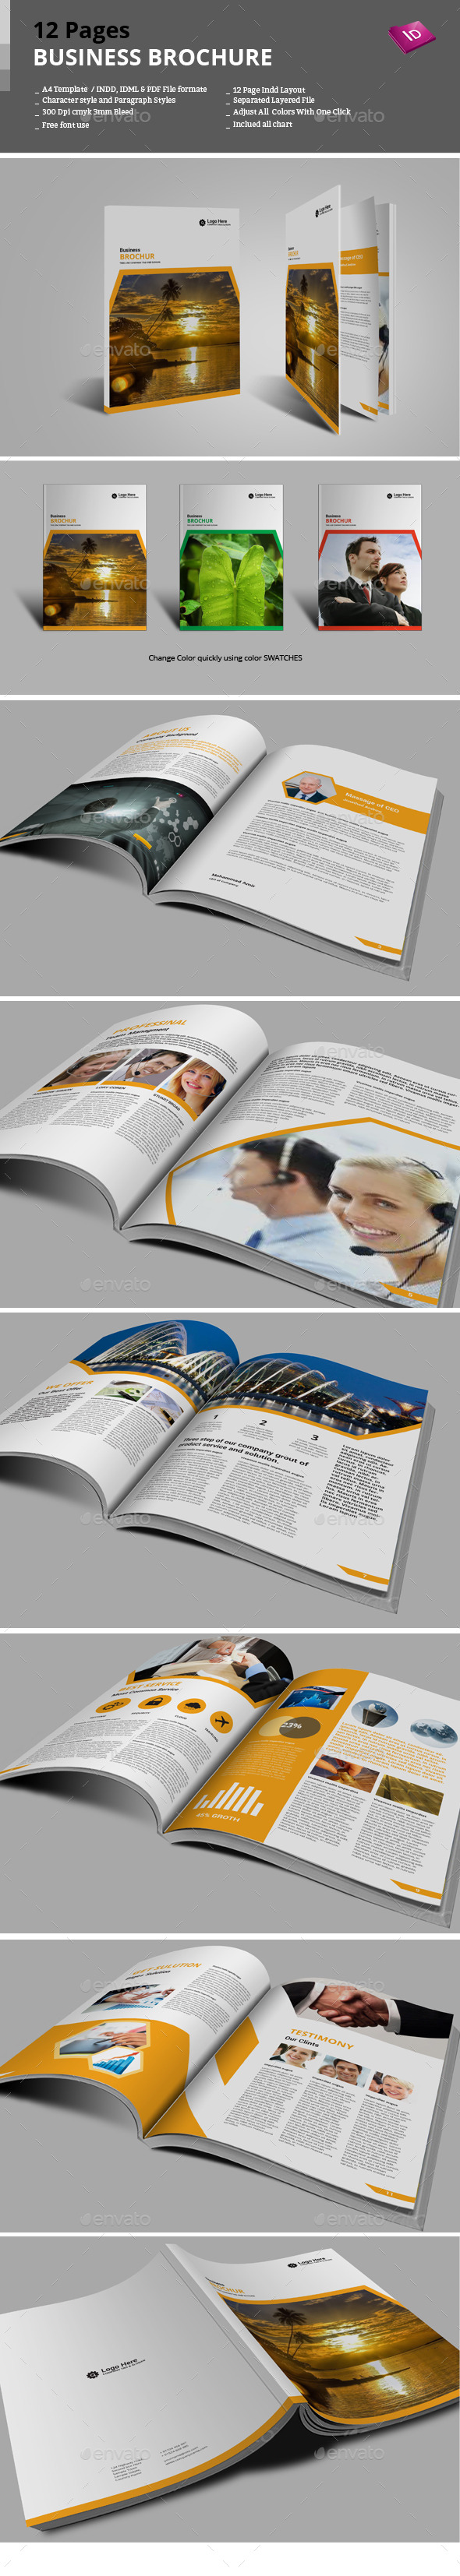 12 Pages Business Brochure - Corporate Brochures